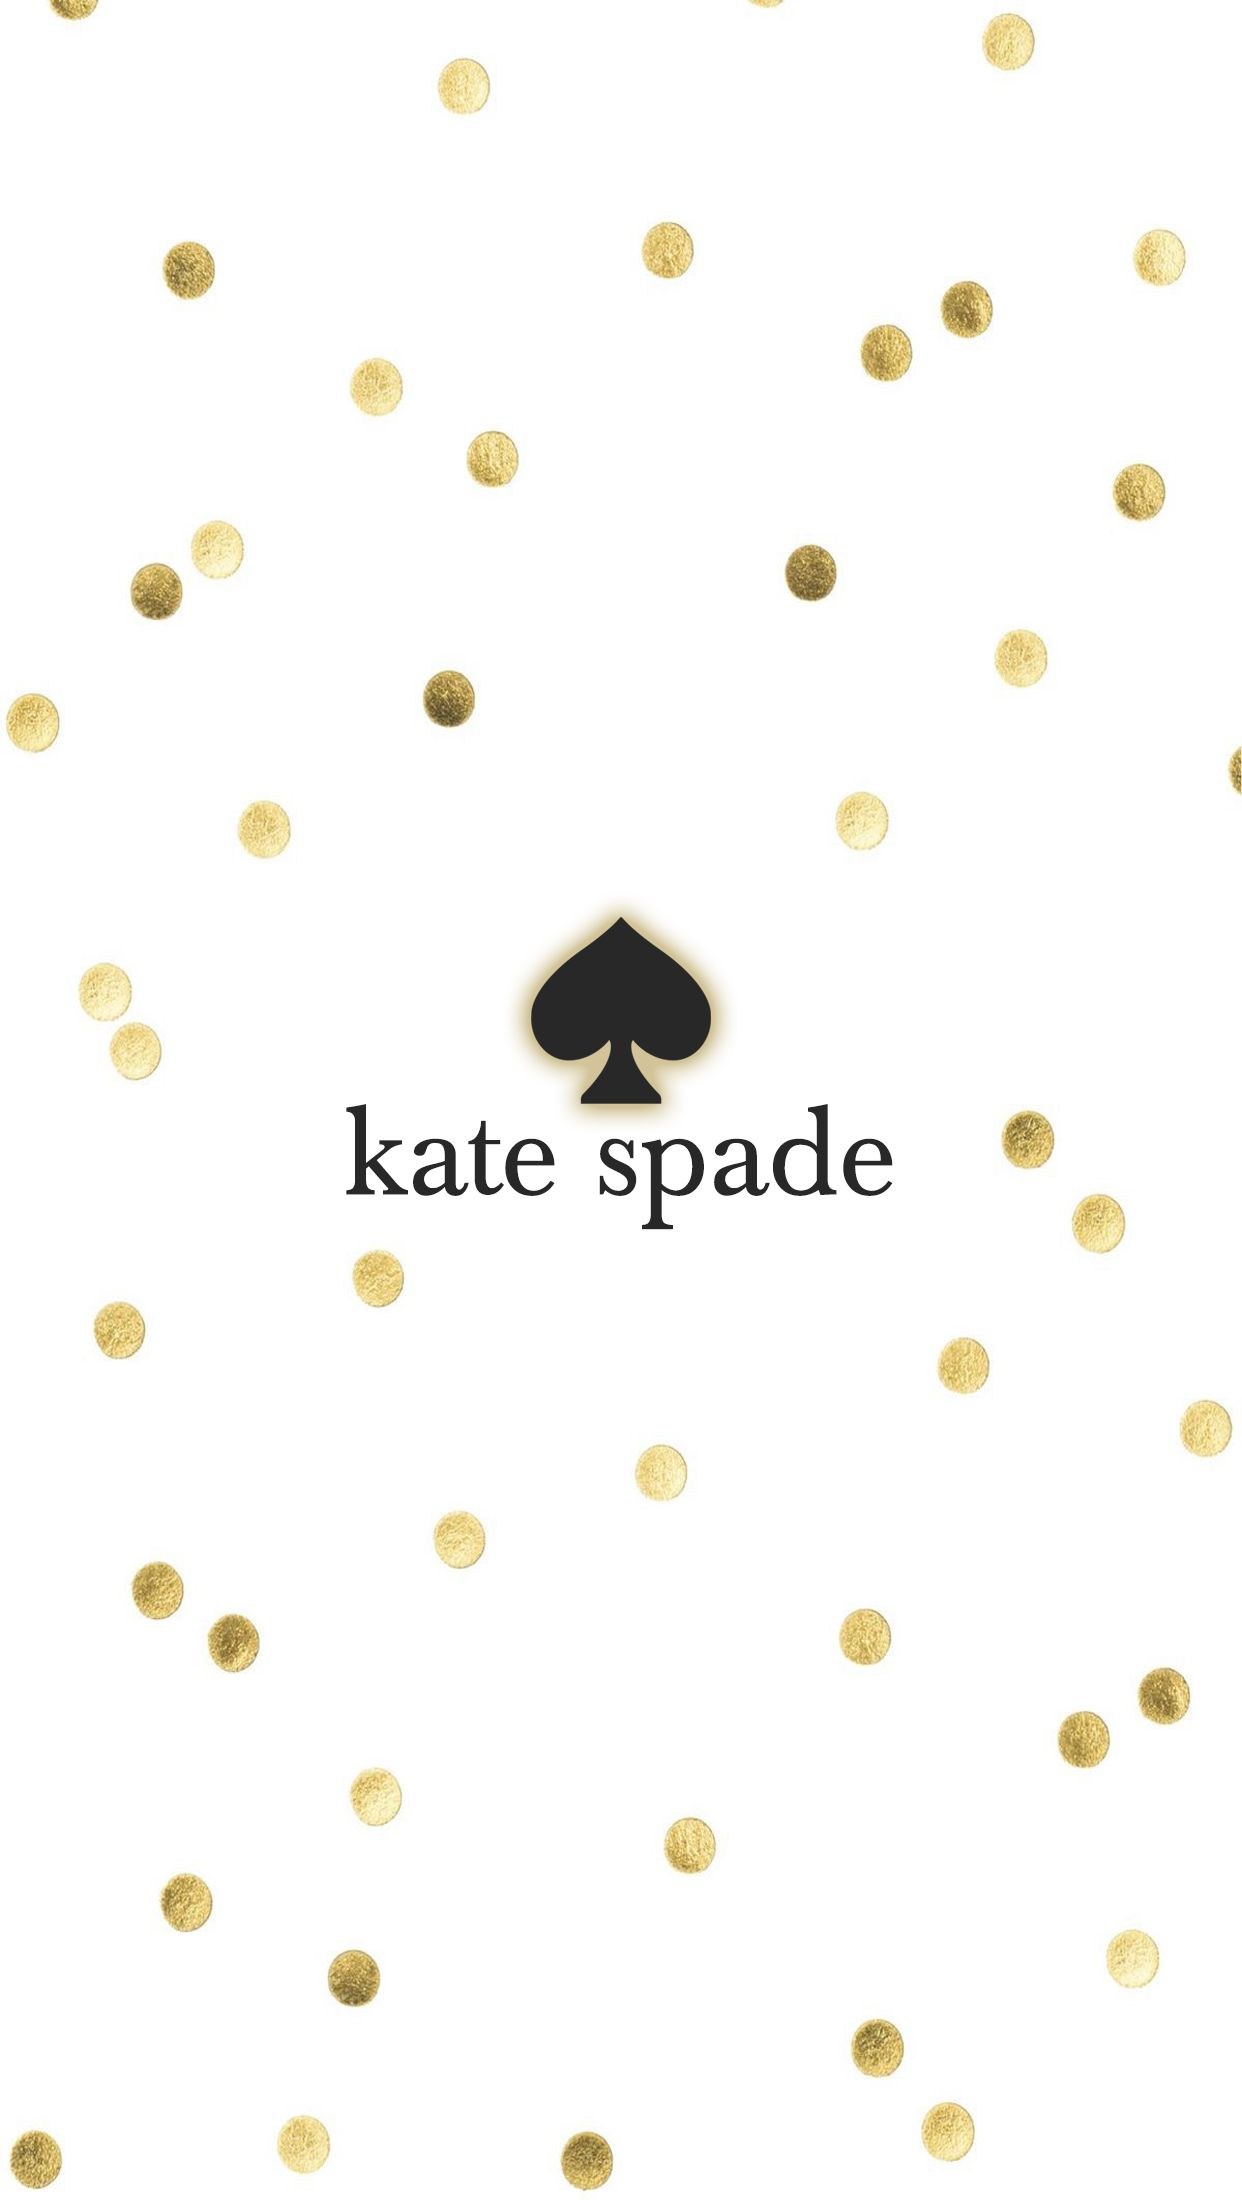 Kate Spade Gold Iphone Wallpaper Background In 2019 Kate